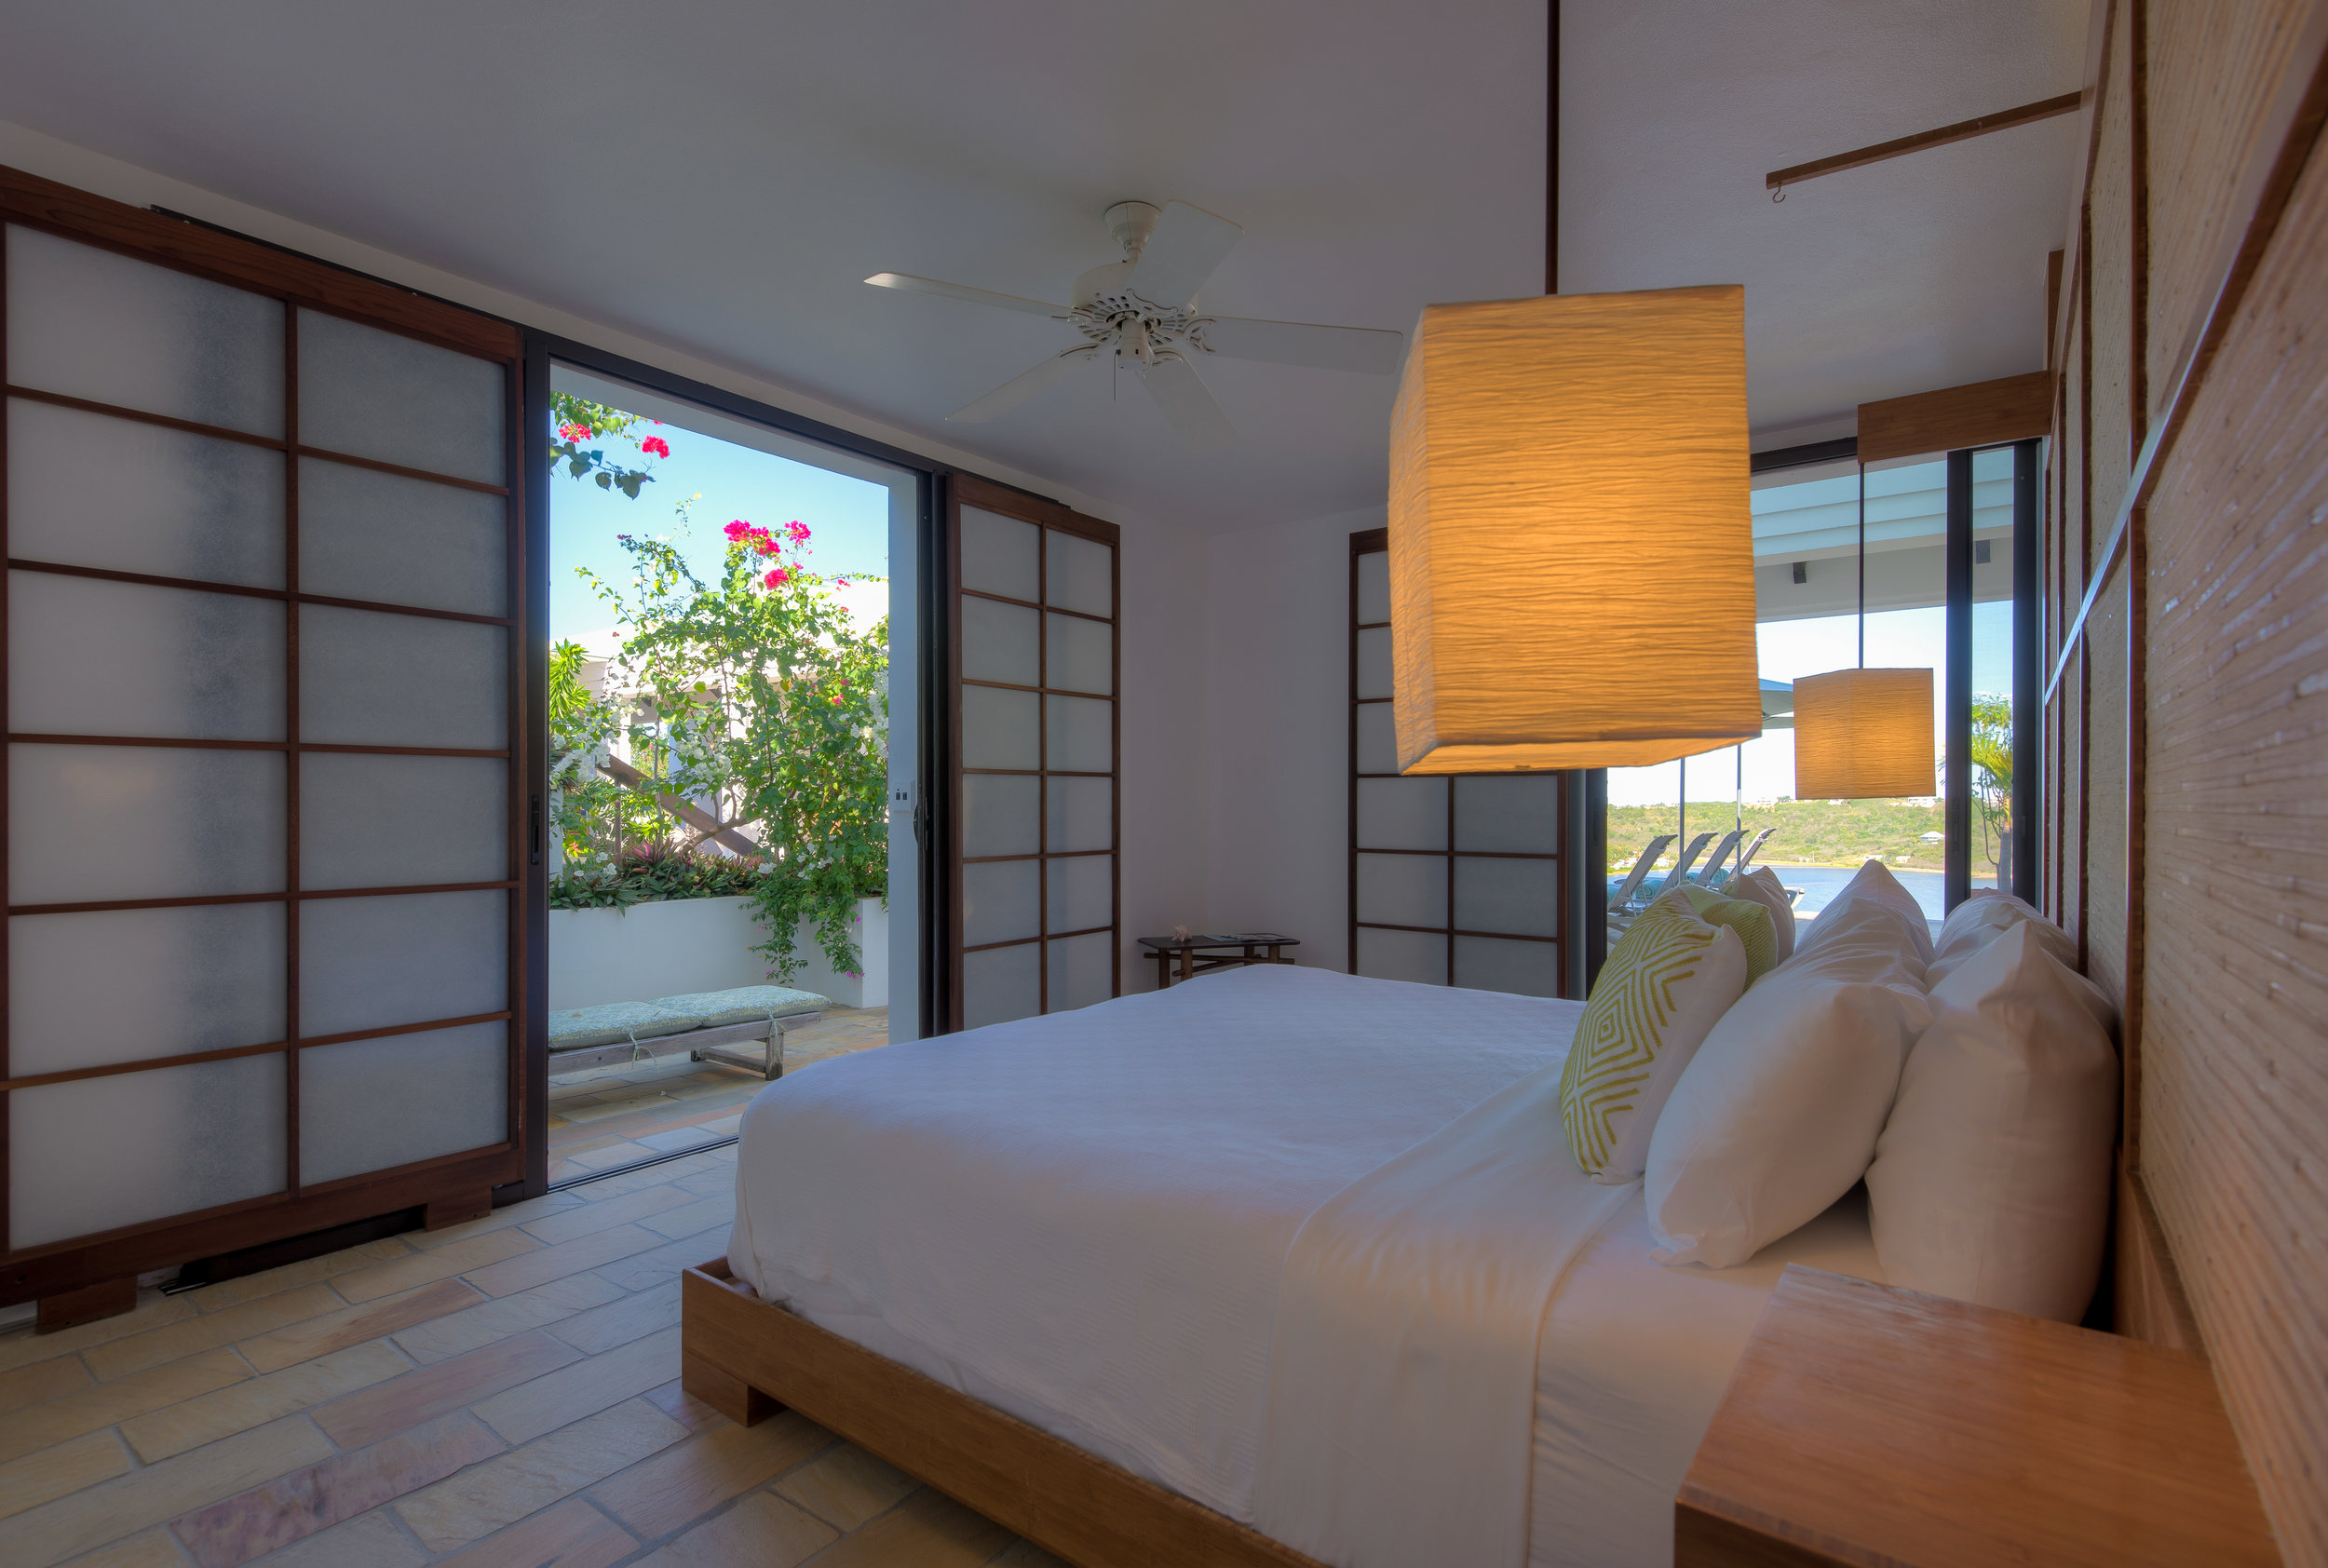 Bedroom #2 - Sandy Ground - Bedroom shot with terrace and pool view.jpg